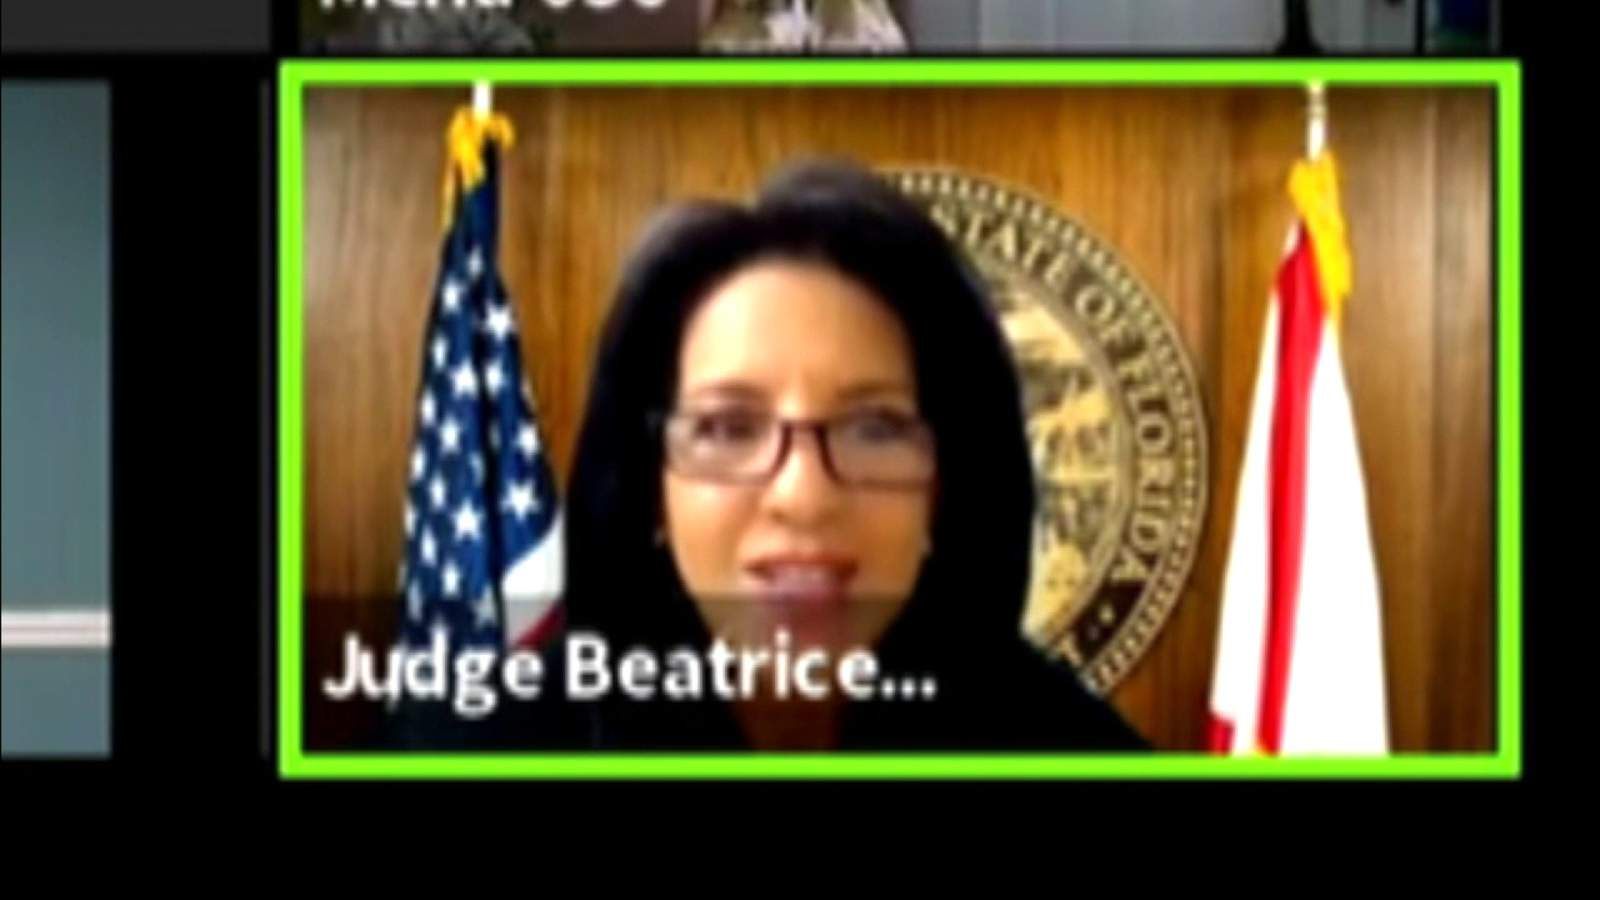 Historic shift to 'virtual' Miami-Dade court continues with 1st civil jury selection on Zoom